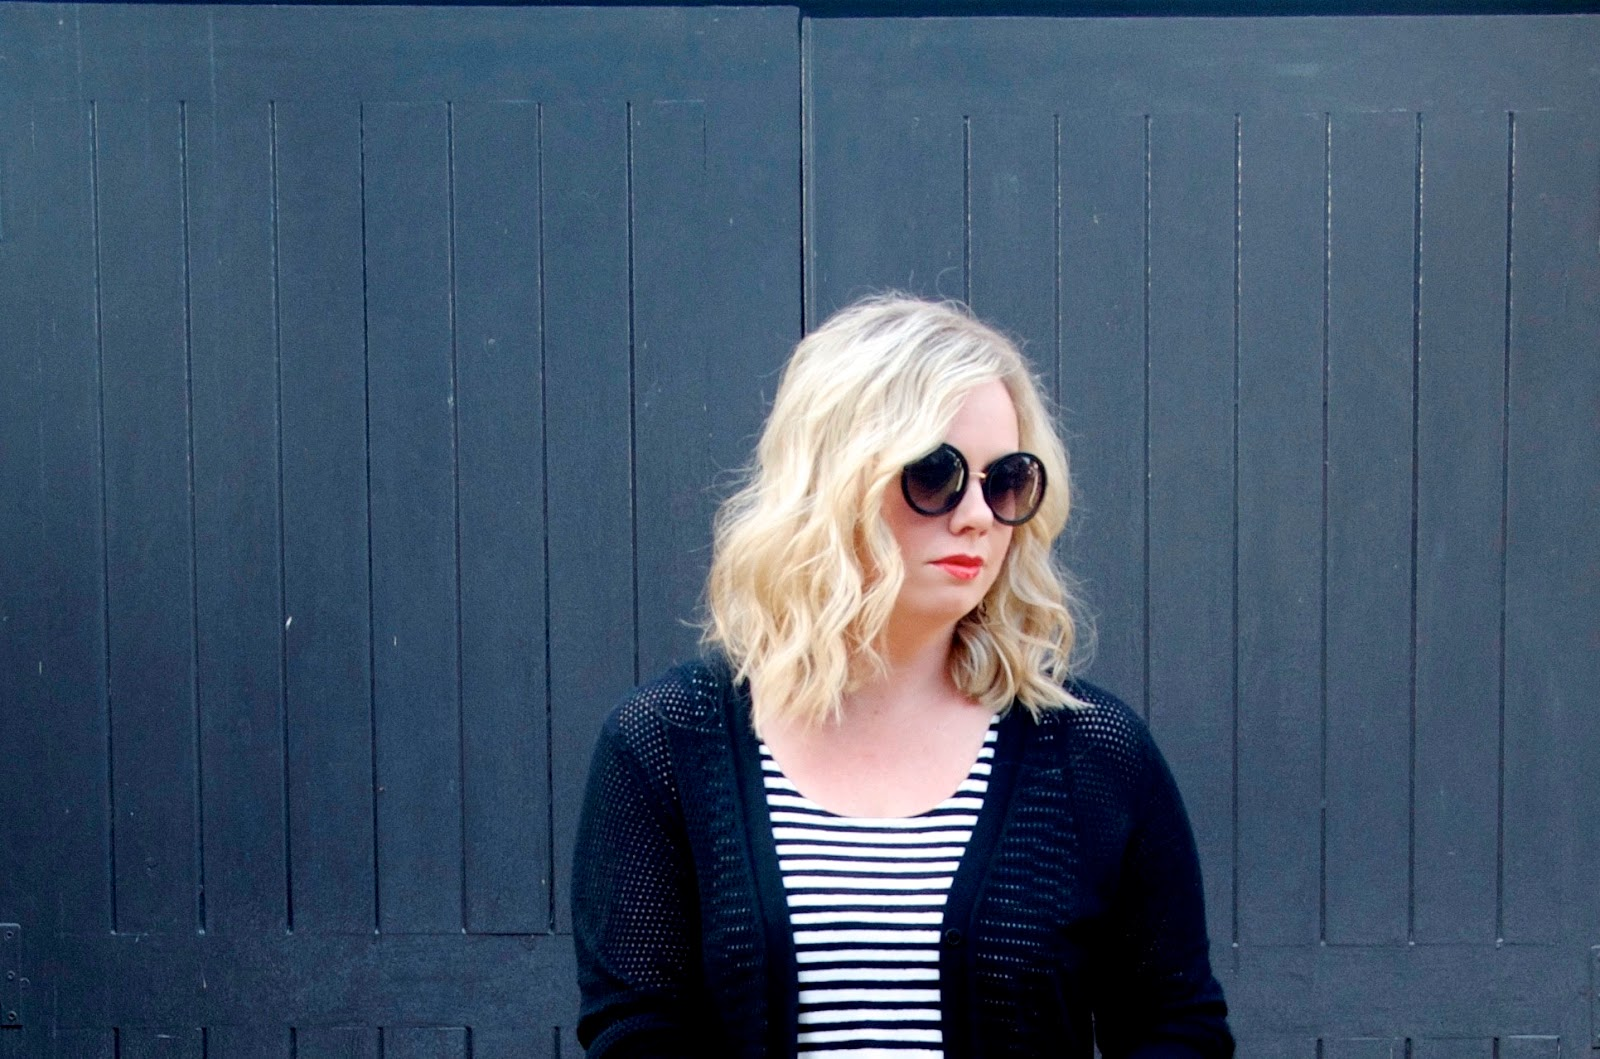 blonde bob, round sunglasses and stripes